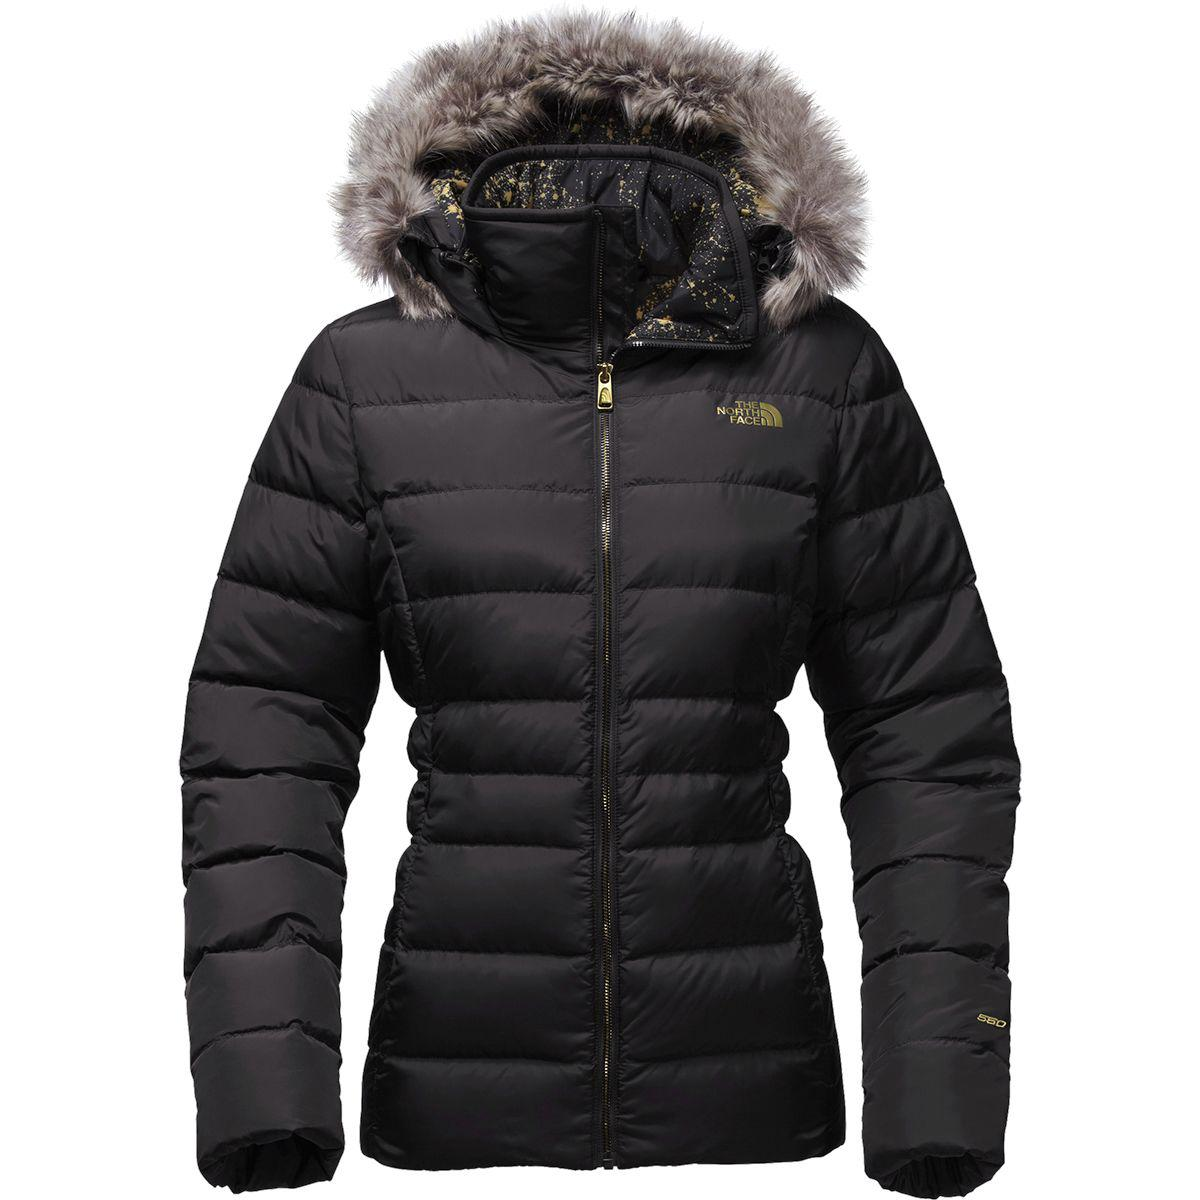 43205d24c027 ... best price the north face. womens black gotham ii hooded down jacket  dde5a 86a09